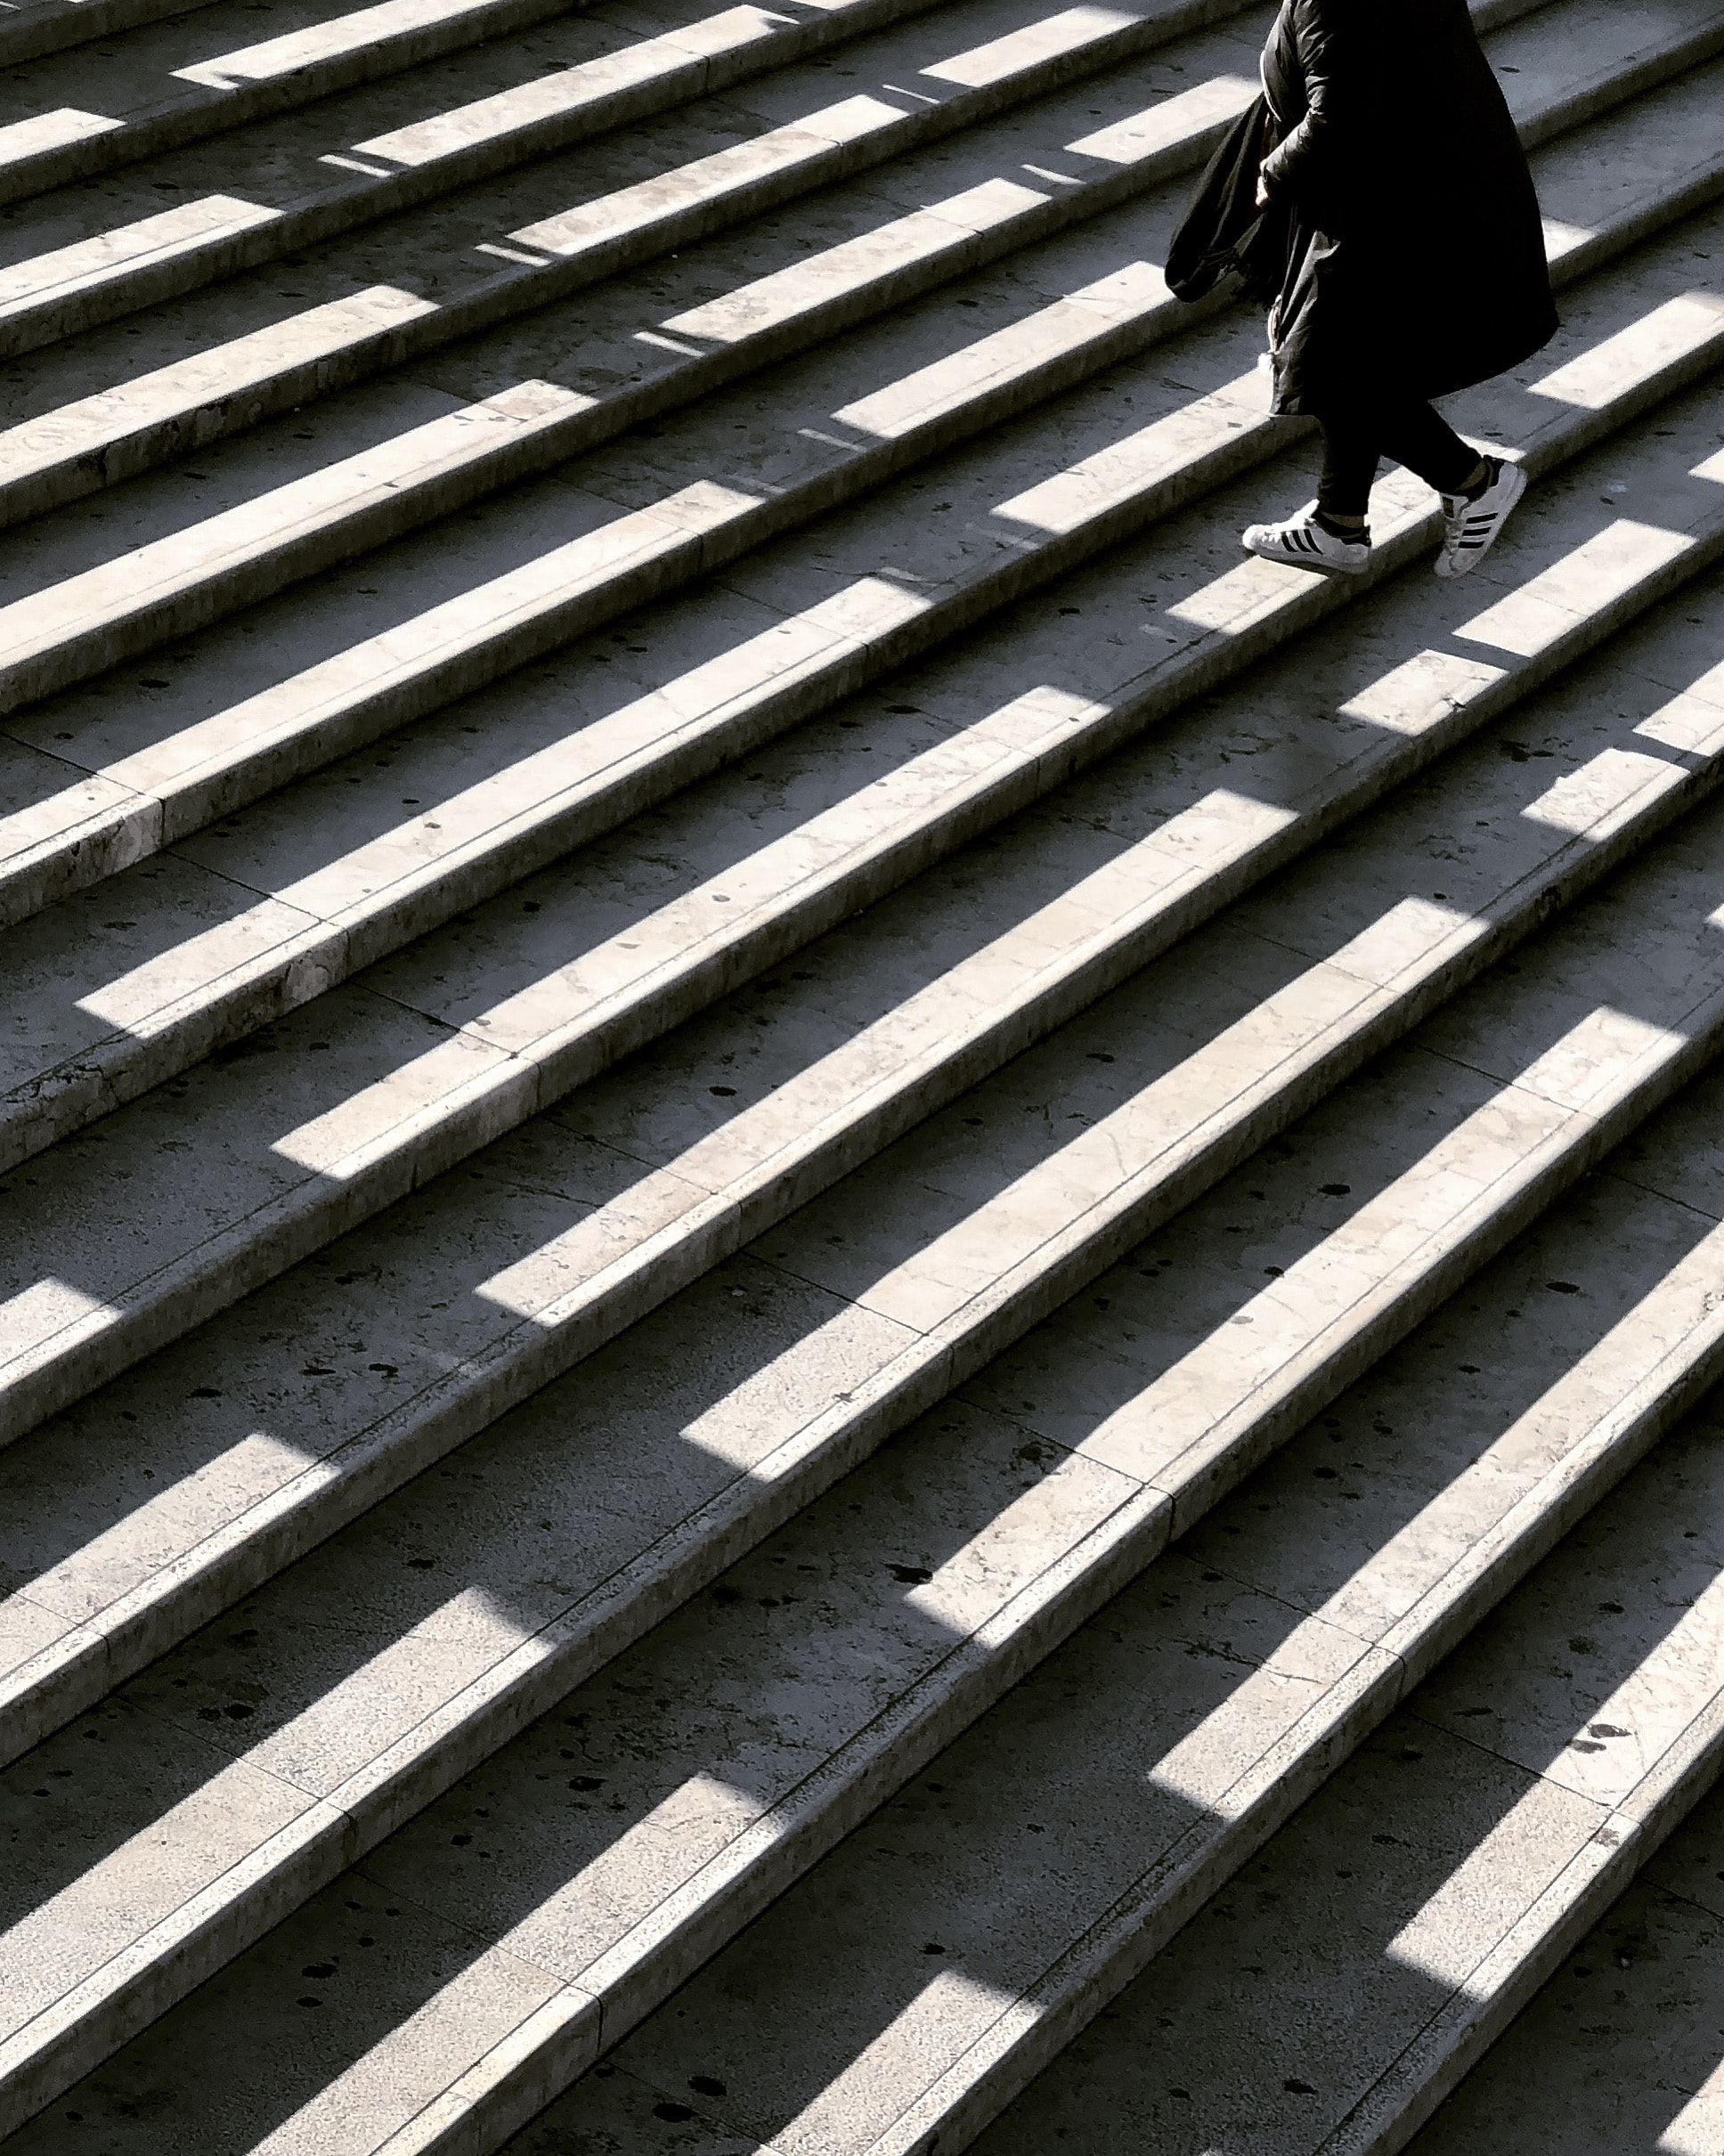 person wearing black jacket walking on stair photography